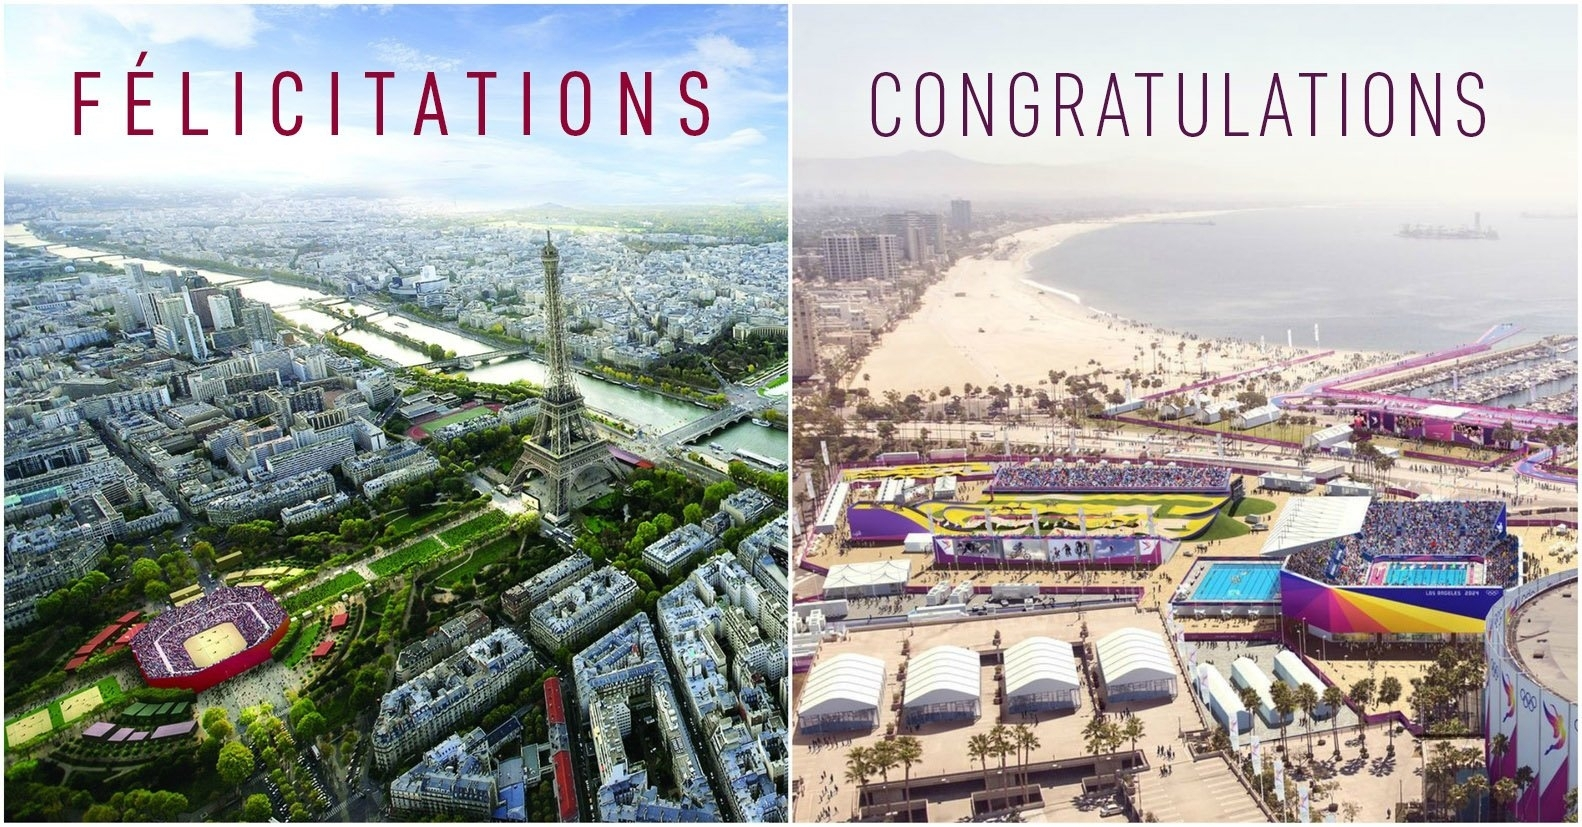 Paris will host the 2024 Olympic Games, with Los Angeles following suit four years later in 2028